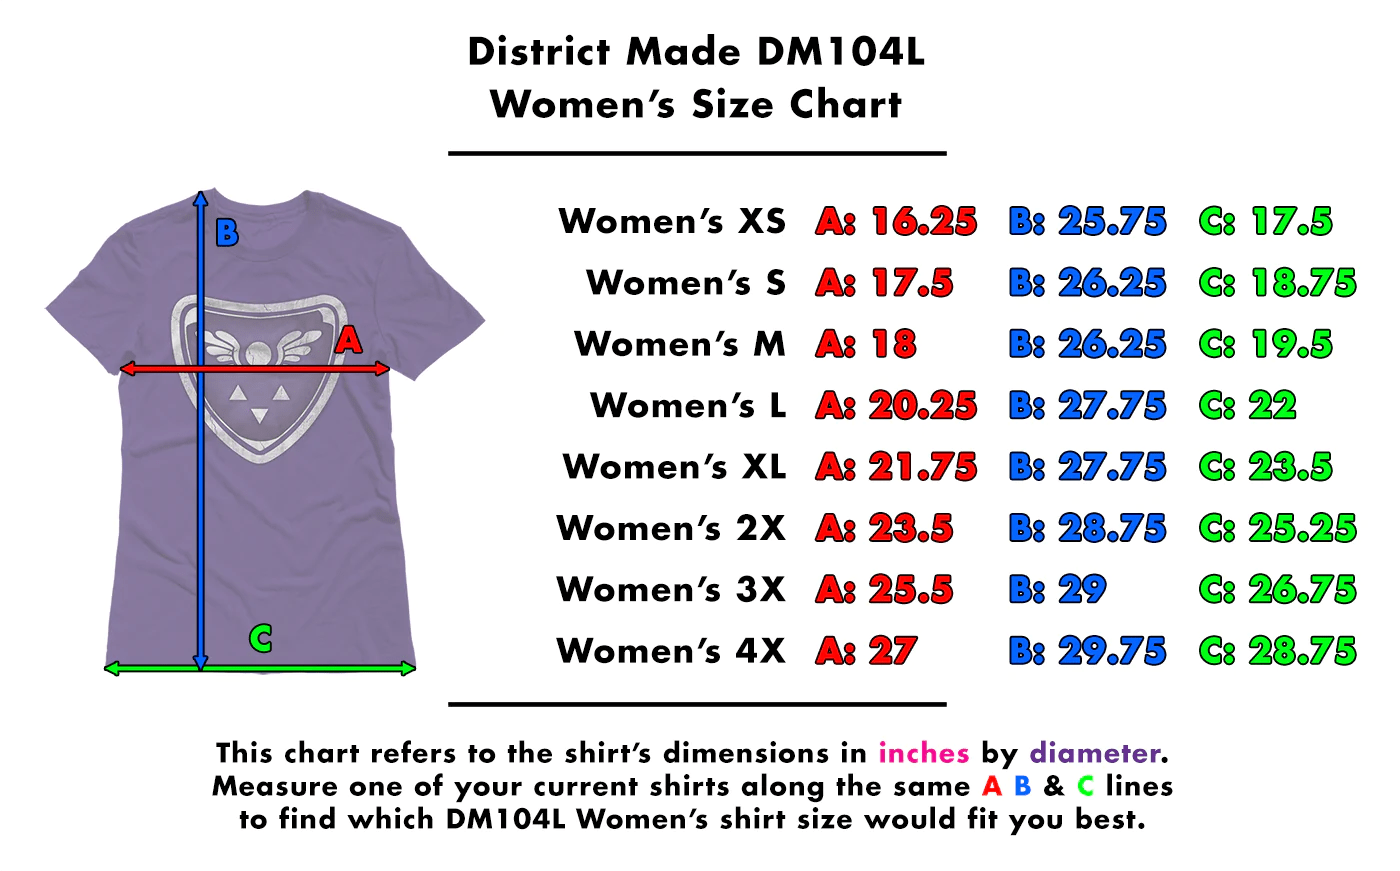 Apparel check out their sizing chart us metric for more information also vlambeer logo shirt fangamer rh